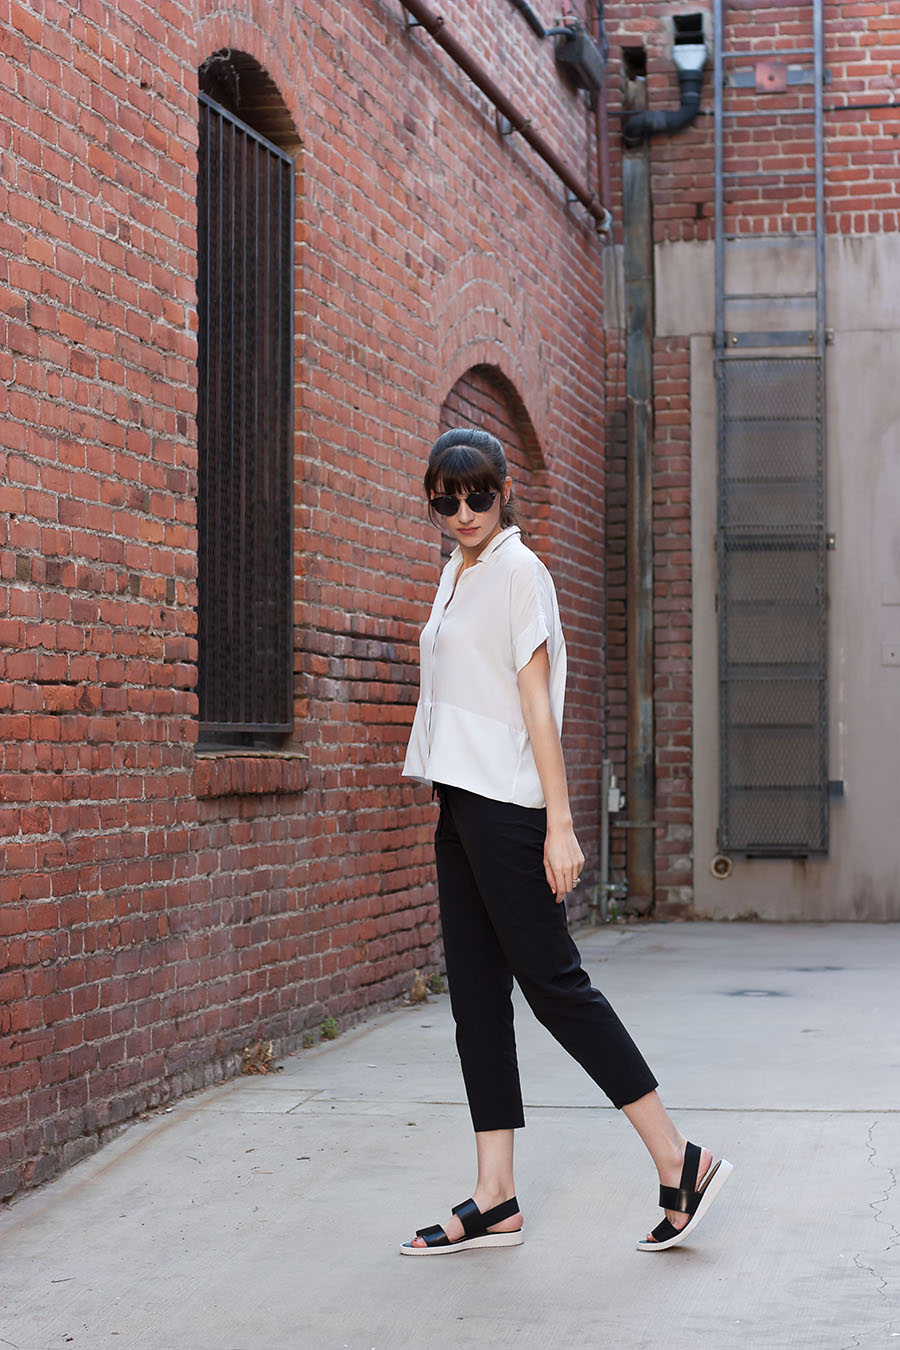 Street Sandal, Casual Minimalist Outfit, Black and White Minimal Style